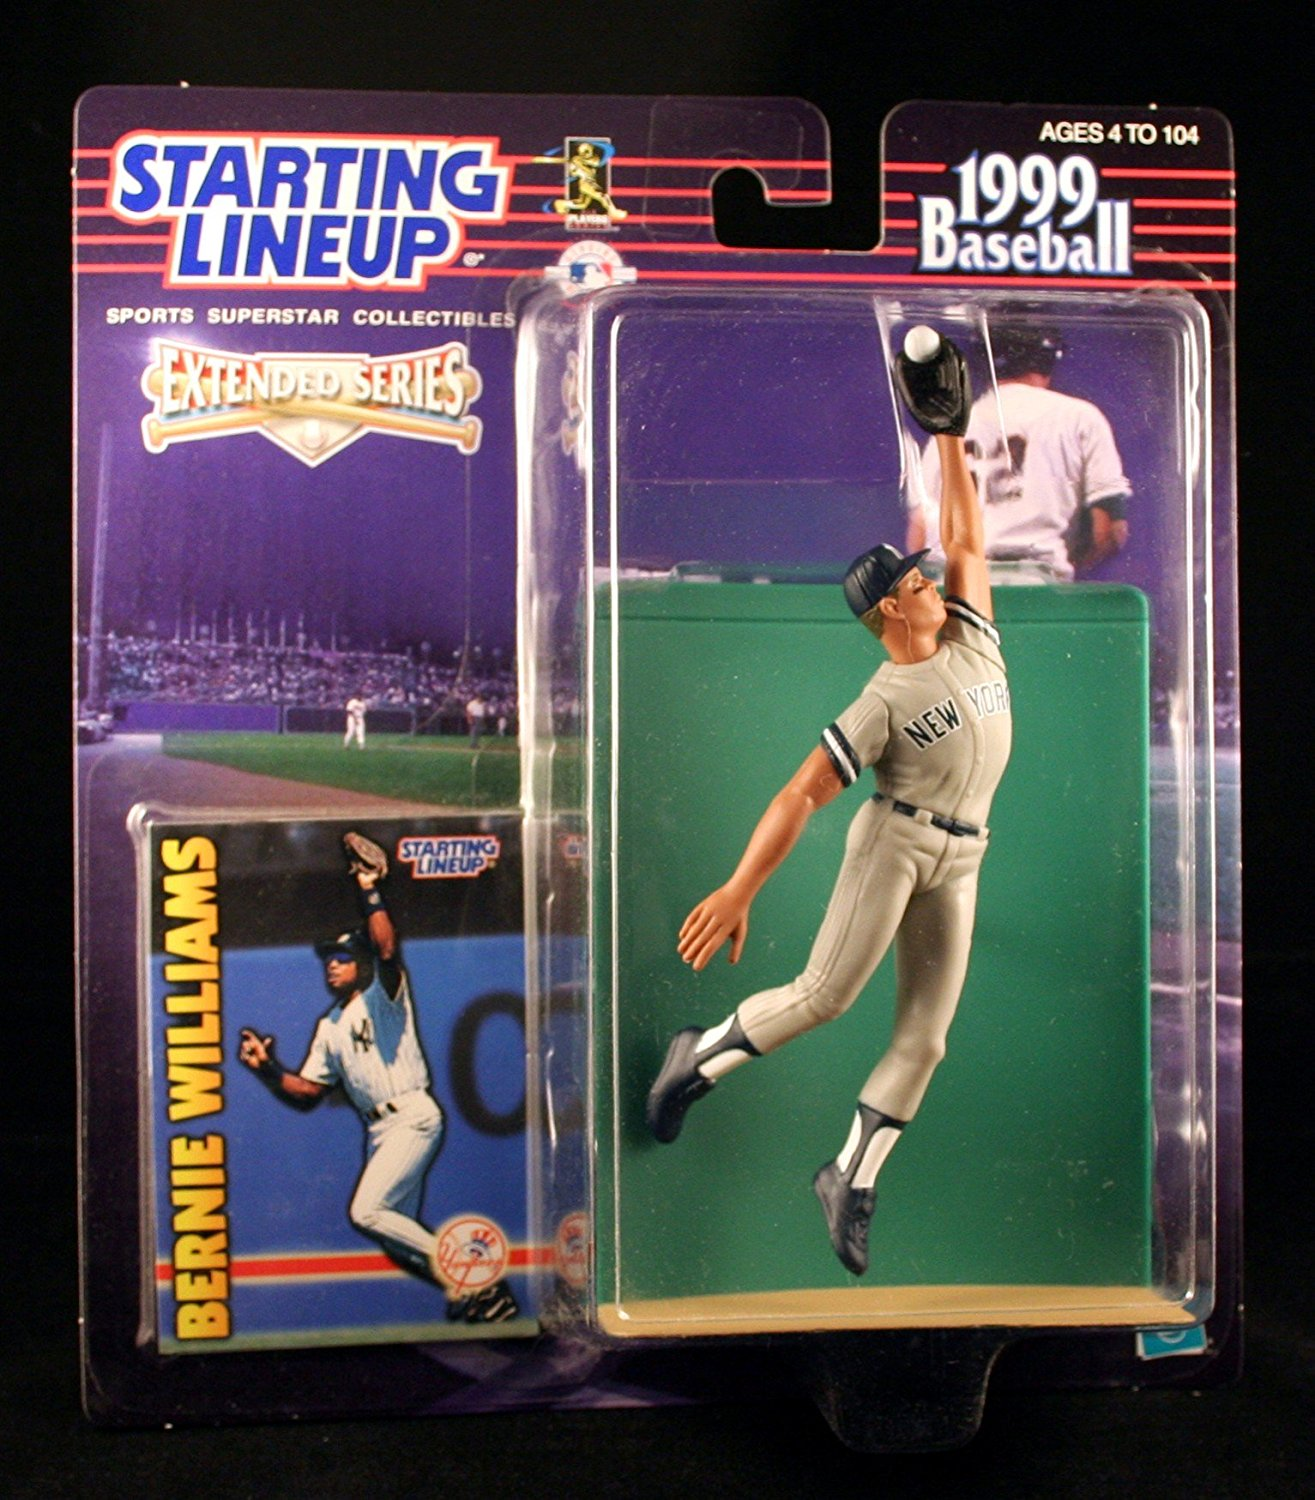 BERNIE WILLIAMS / NEW YORK YANKEES 1999 MLB Extended Series Starting Lineup Action Figure & Exclusive Collector Trading Card